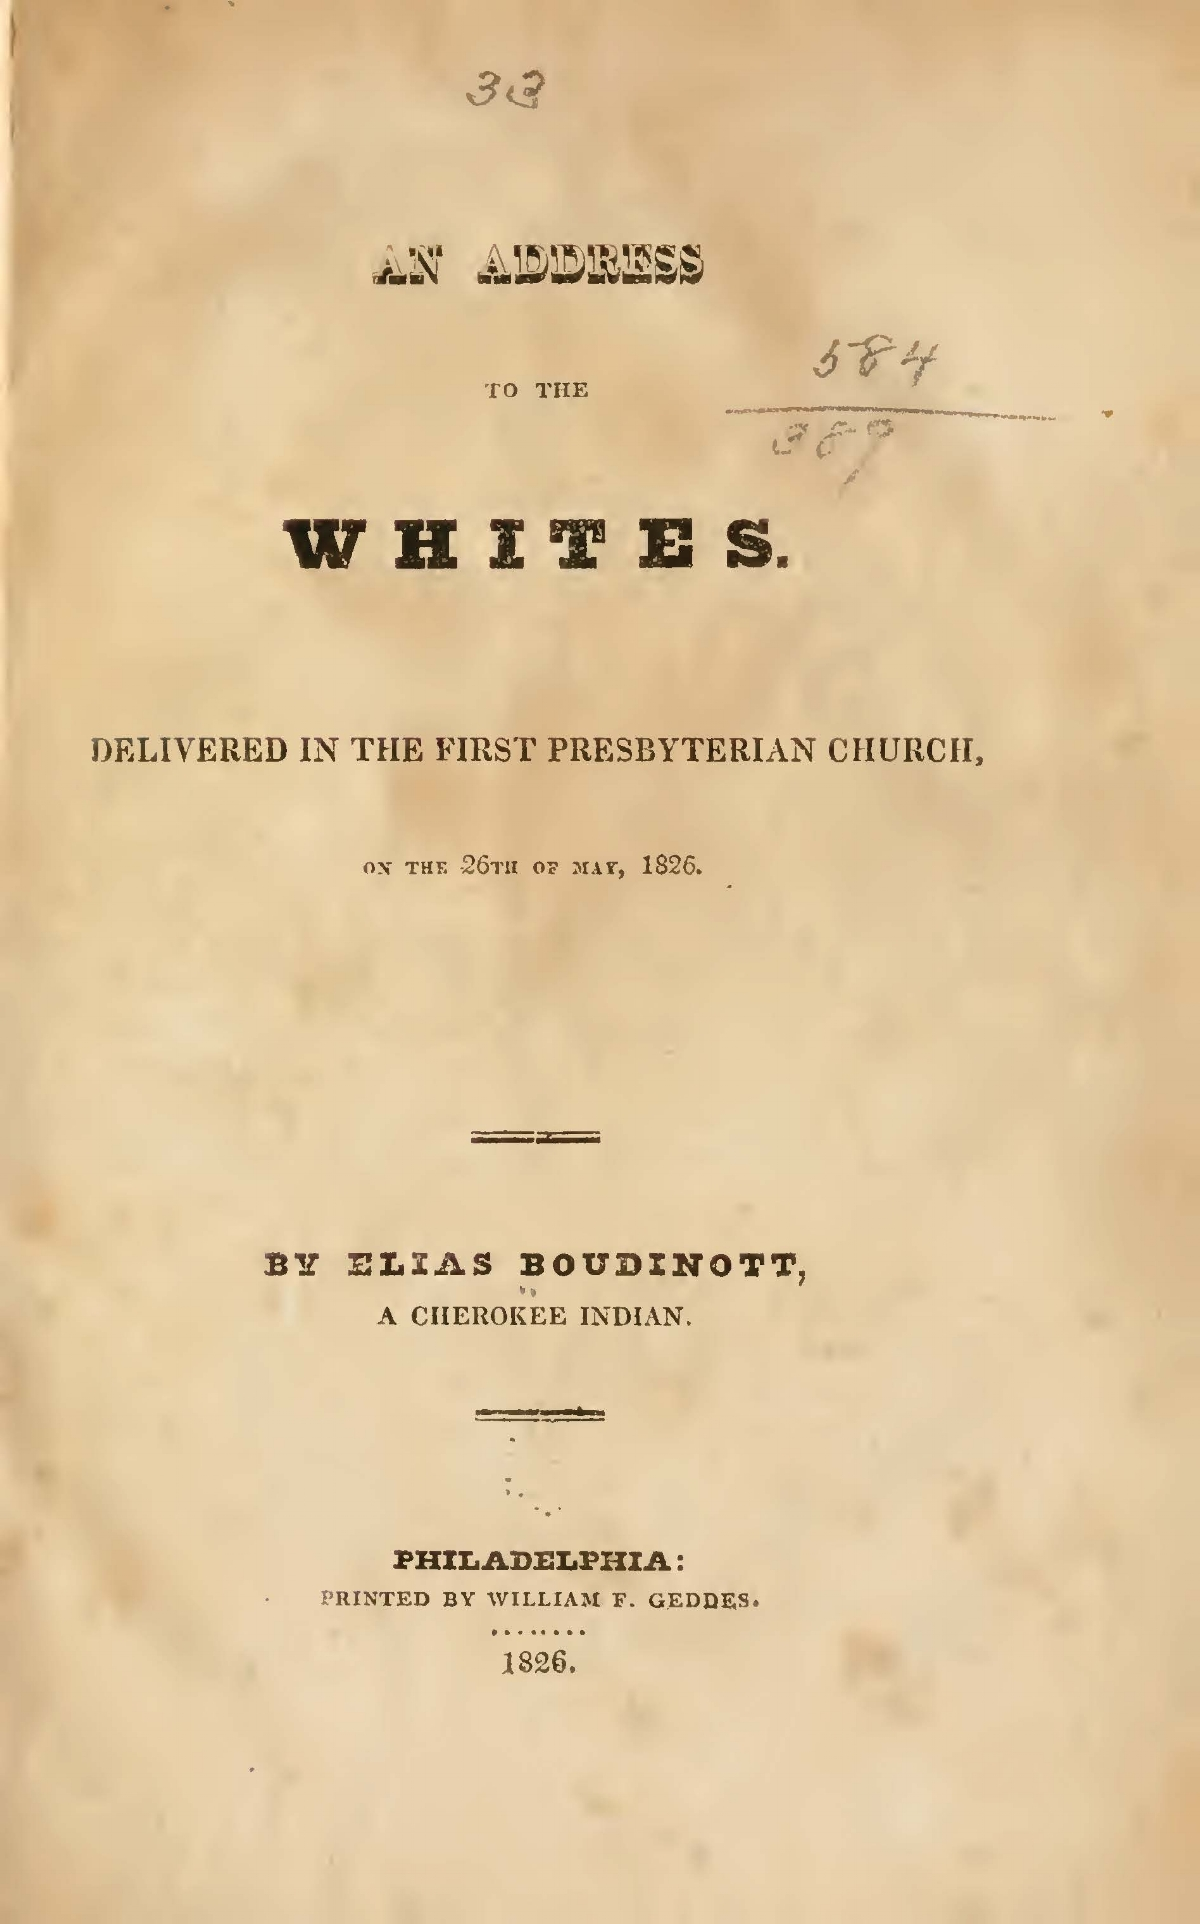 Boudinot, Elias, An Address to the Whites Title Page.jpg